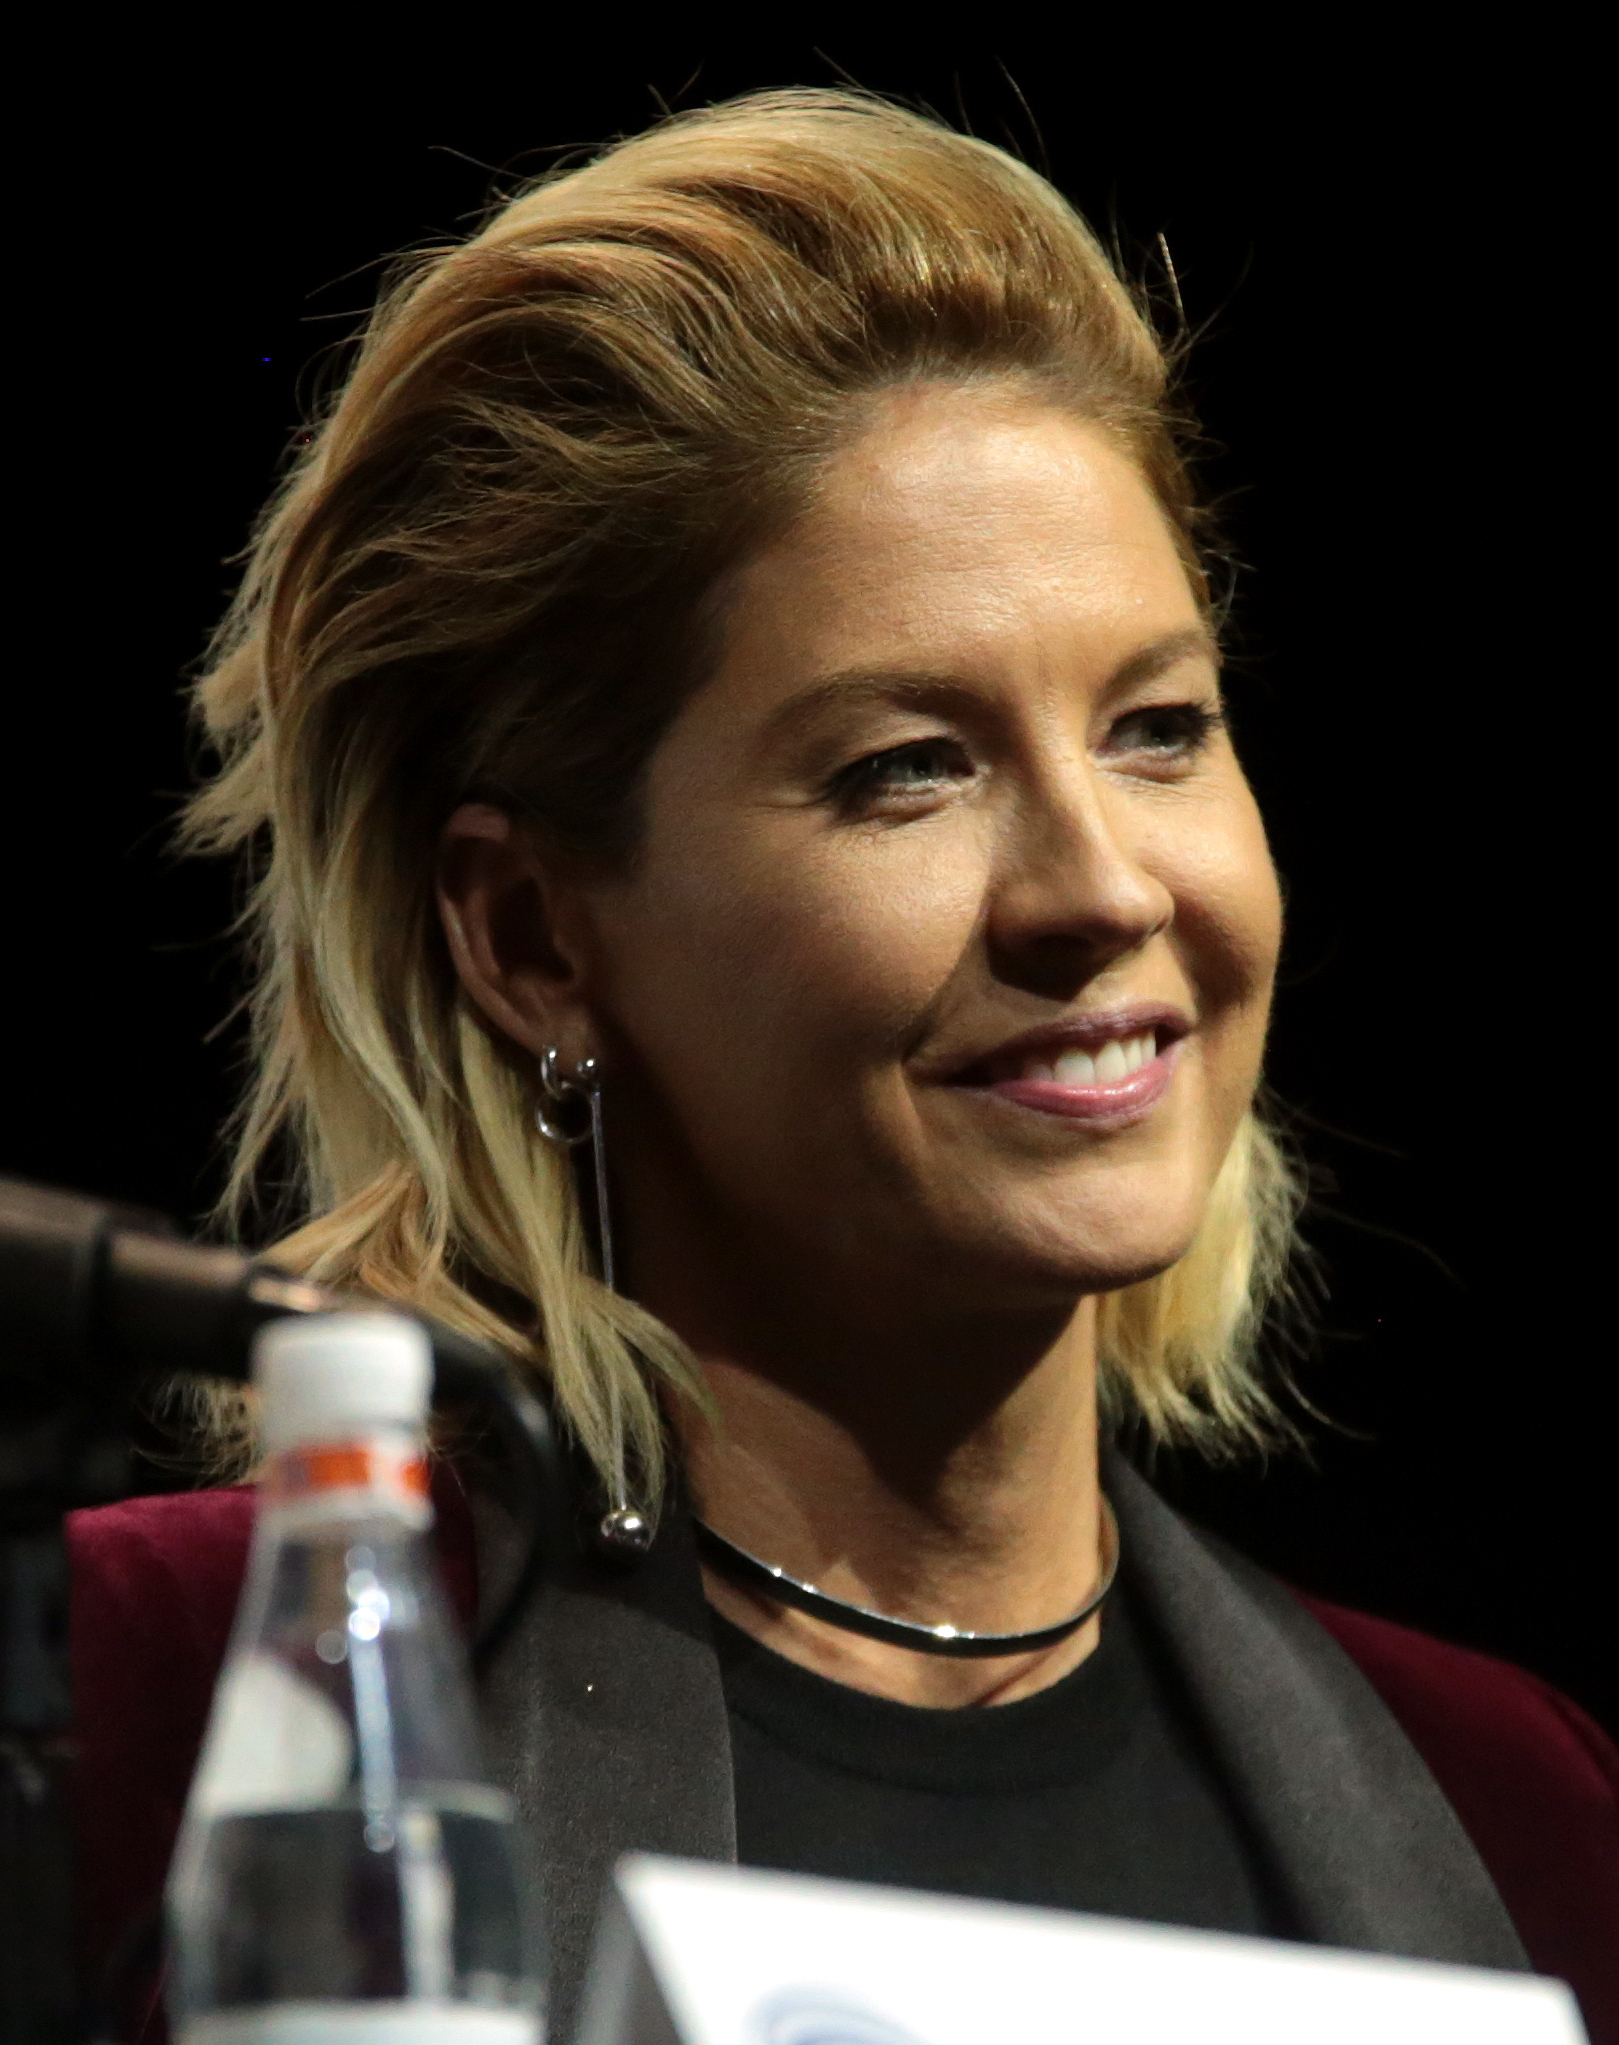 The 47-year old daughter of father Richard Wayne Butala and mother Sue Grace Butala Jenna Elfman in 2018 photo. Jenna Elfman earned a  million dollar salary - leaving the net worth at 16 million in 2018